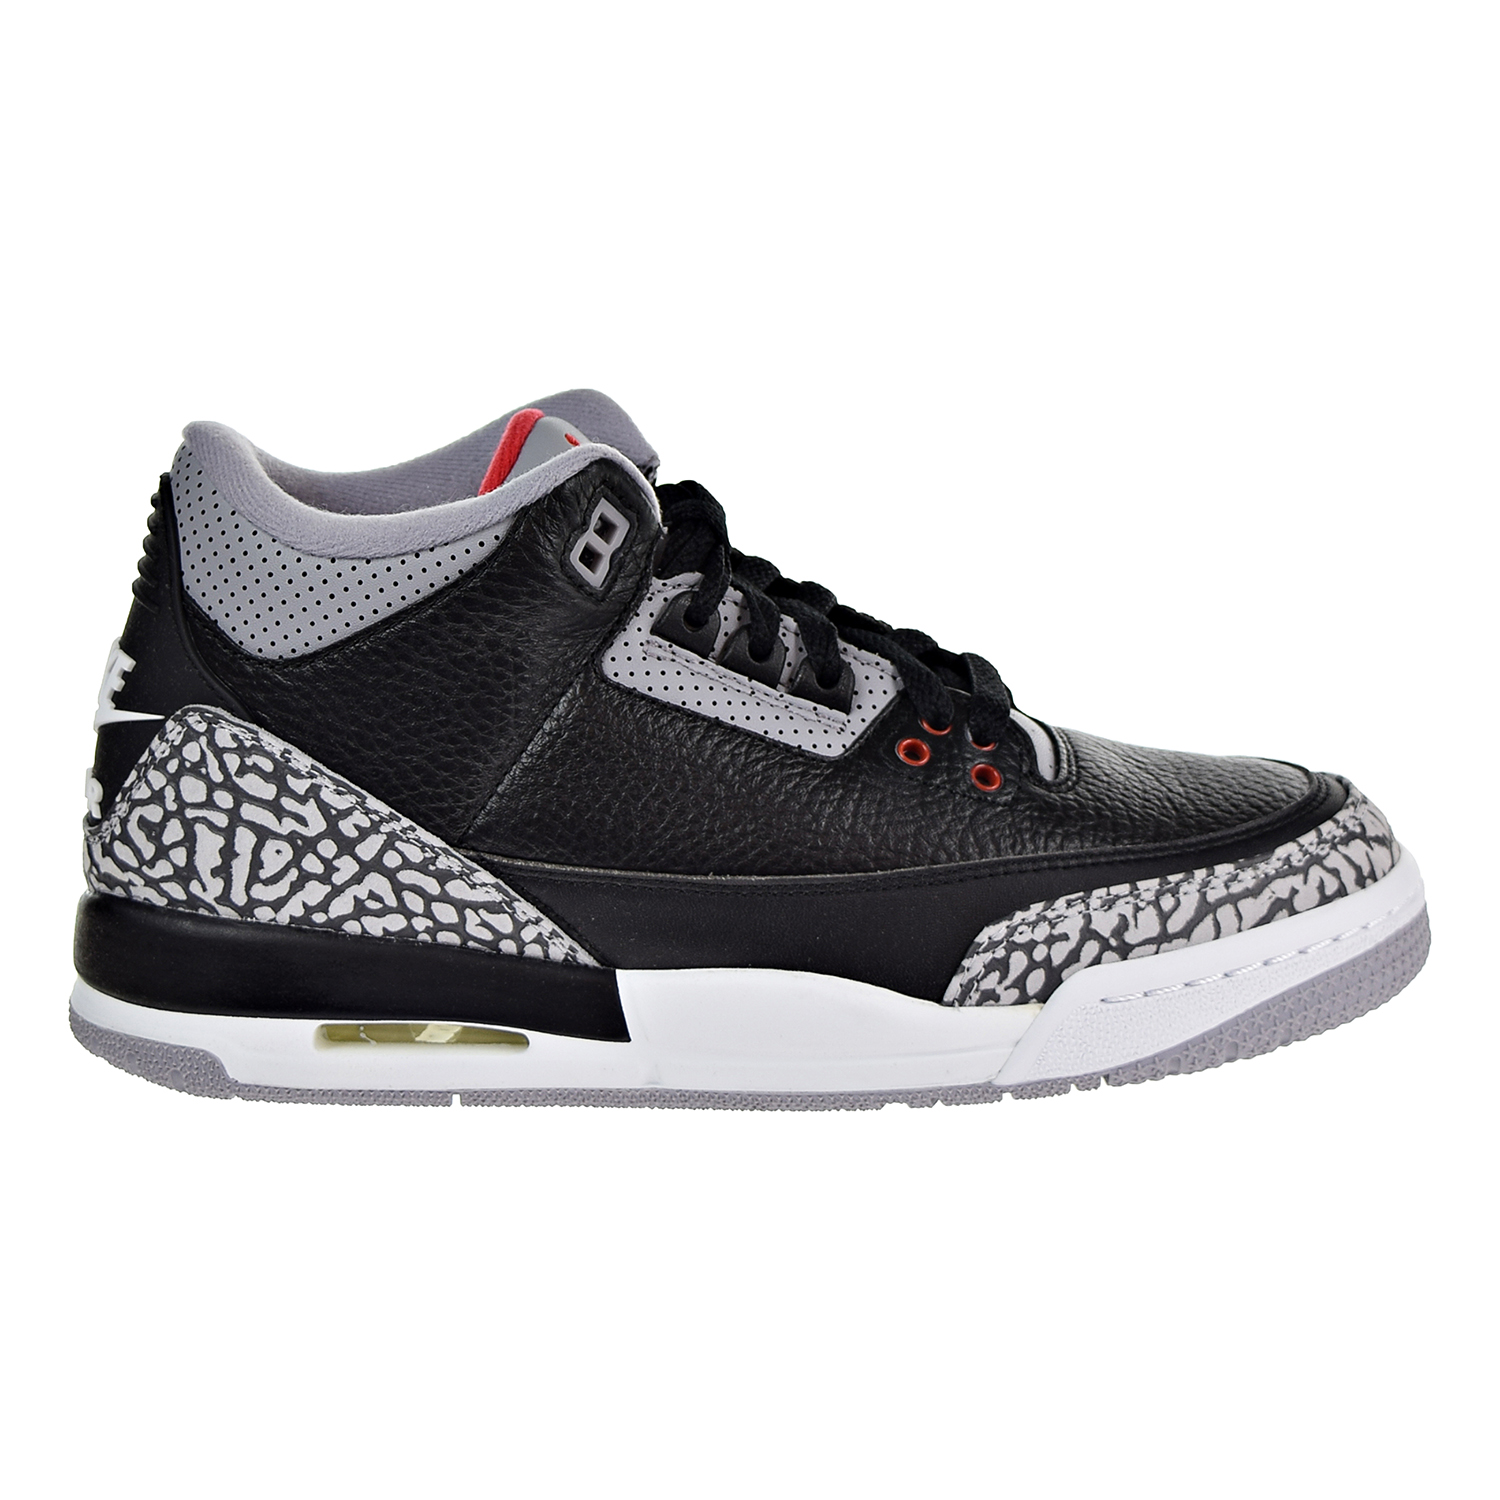 Air Jordan 3 Retro OG Big Kids' Basketball Shoes Black/Fire Red/Cement Grey 854261-001